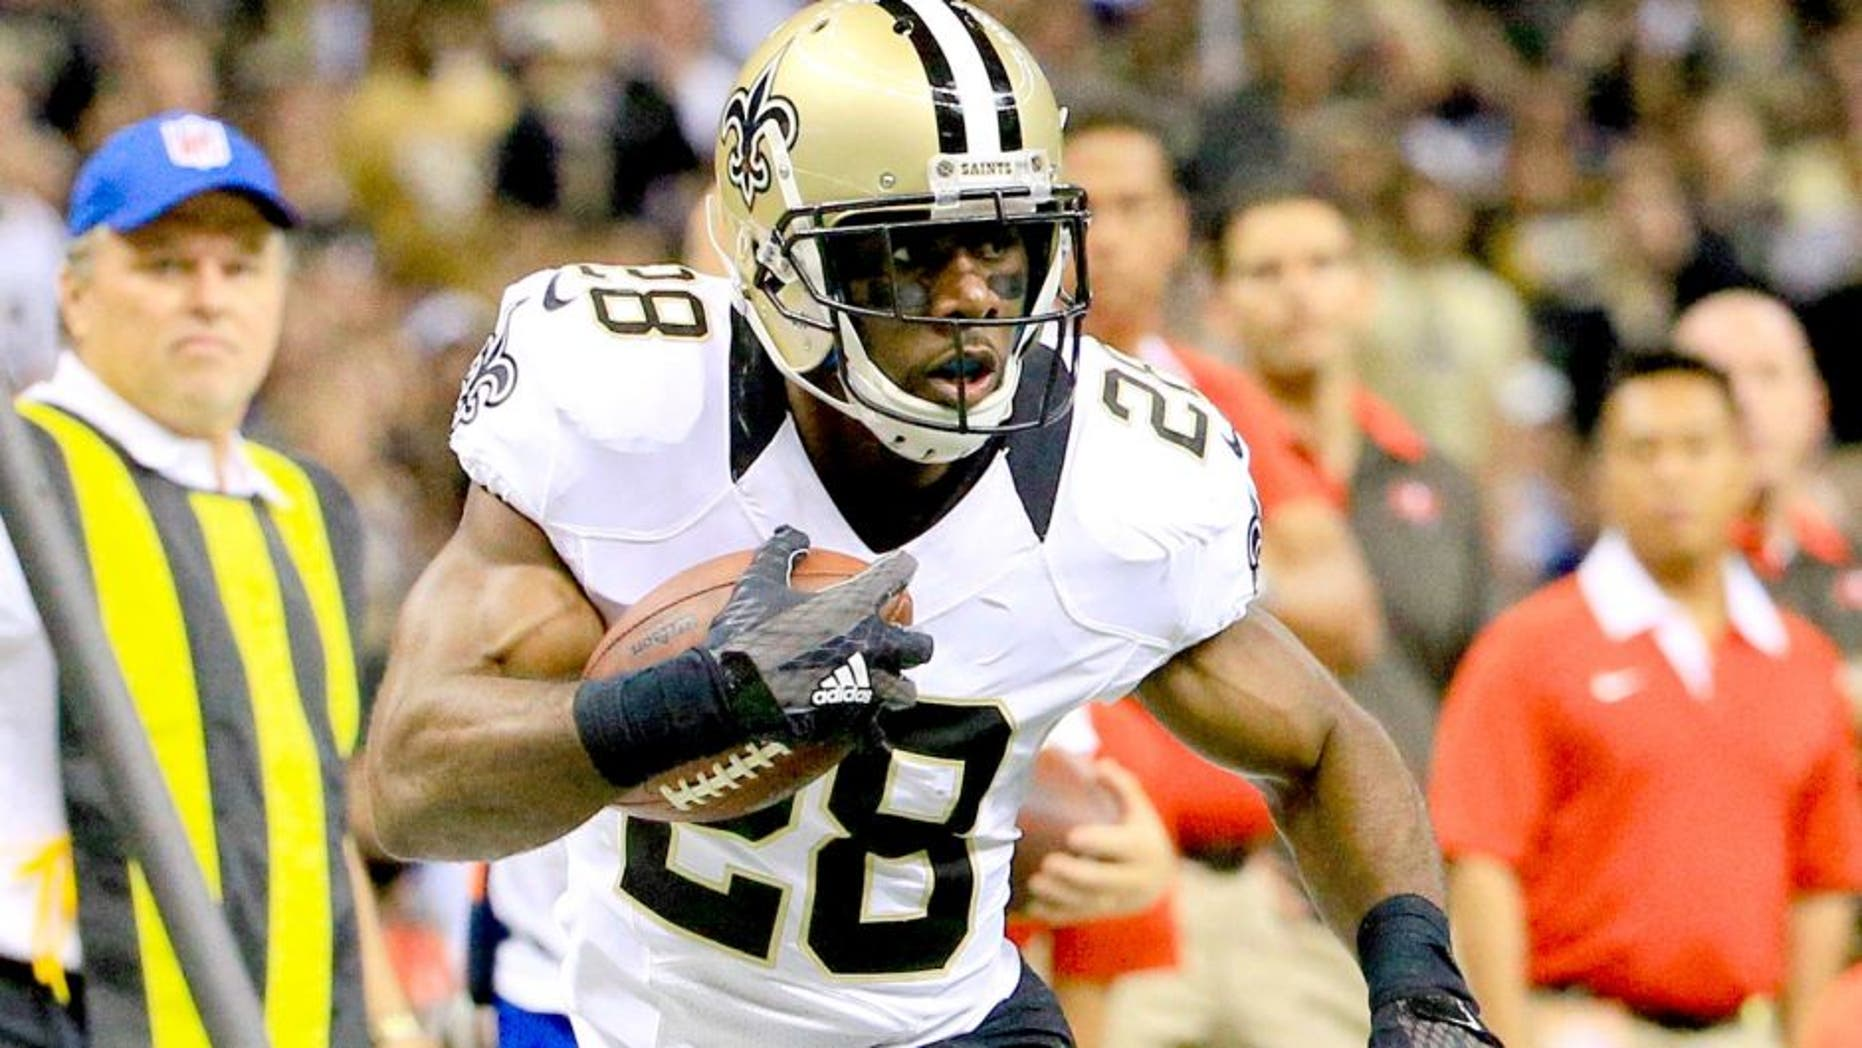 Sep 20, 2015; New Orleans, LA, USA; New Orleans Saints running back C.J. Spiller (28) carries the ball against the Tampa Bay Buccaneers during the second half of a game at the Mercedes-Benz Superdome. The Buccaneers won 26-19. Mandatory Credit: Derick E. Hingle-USA TODAY Sports